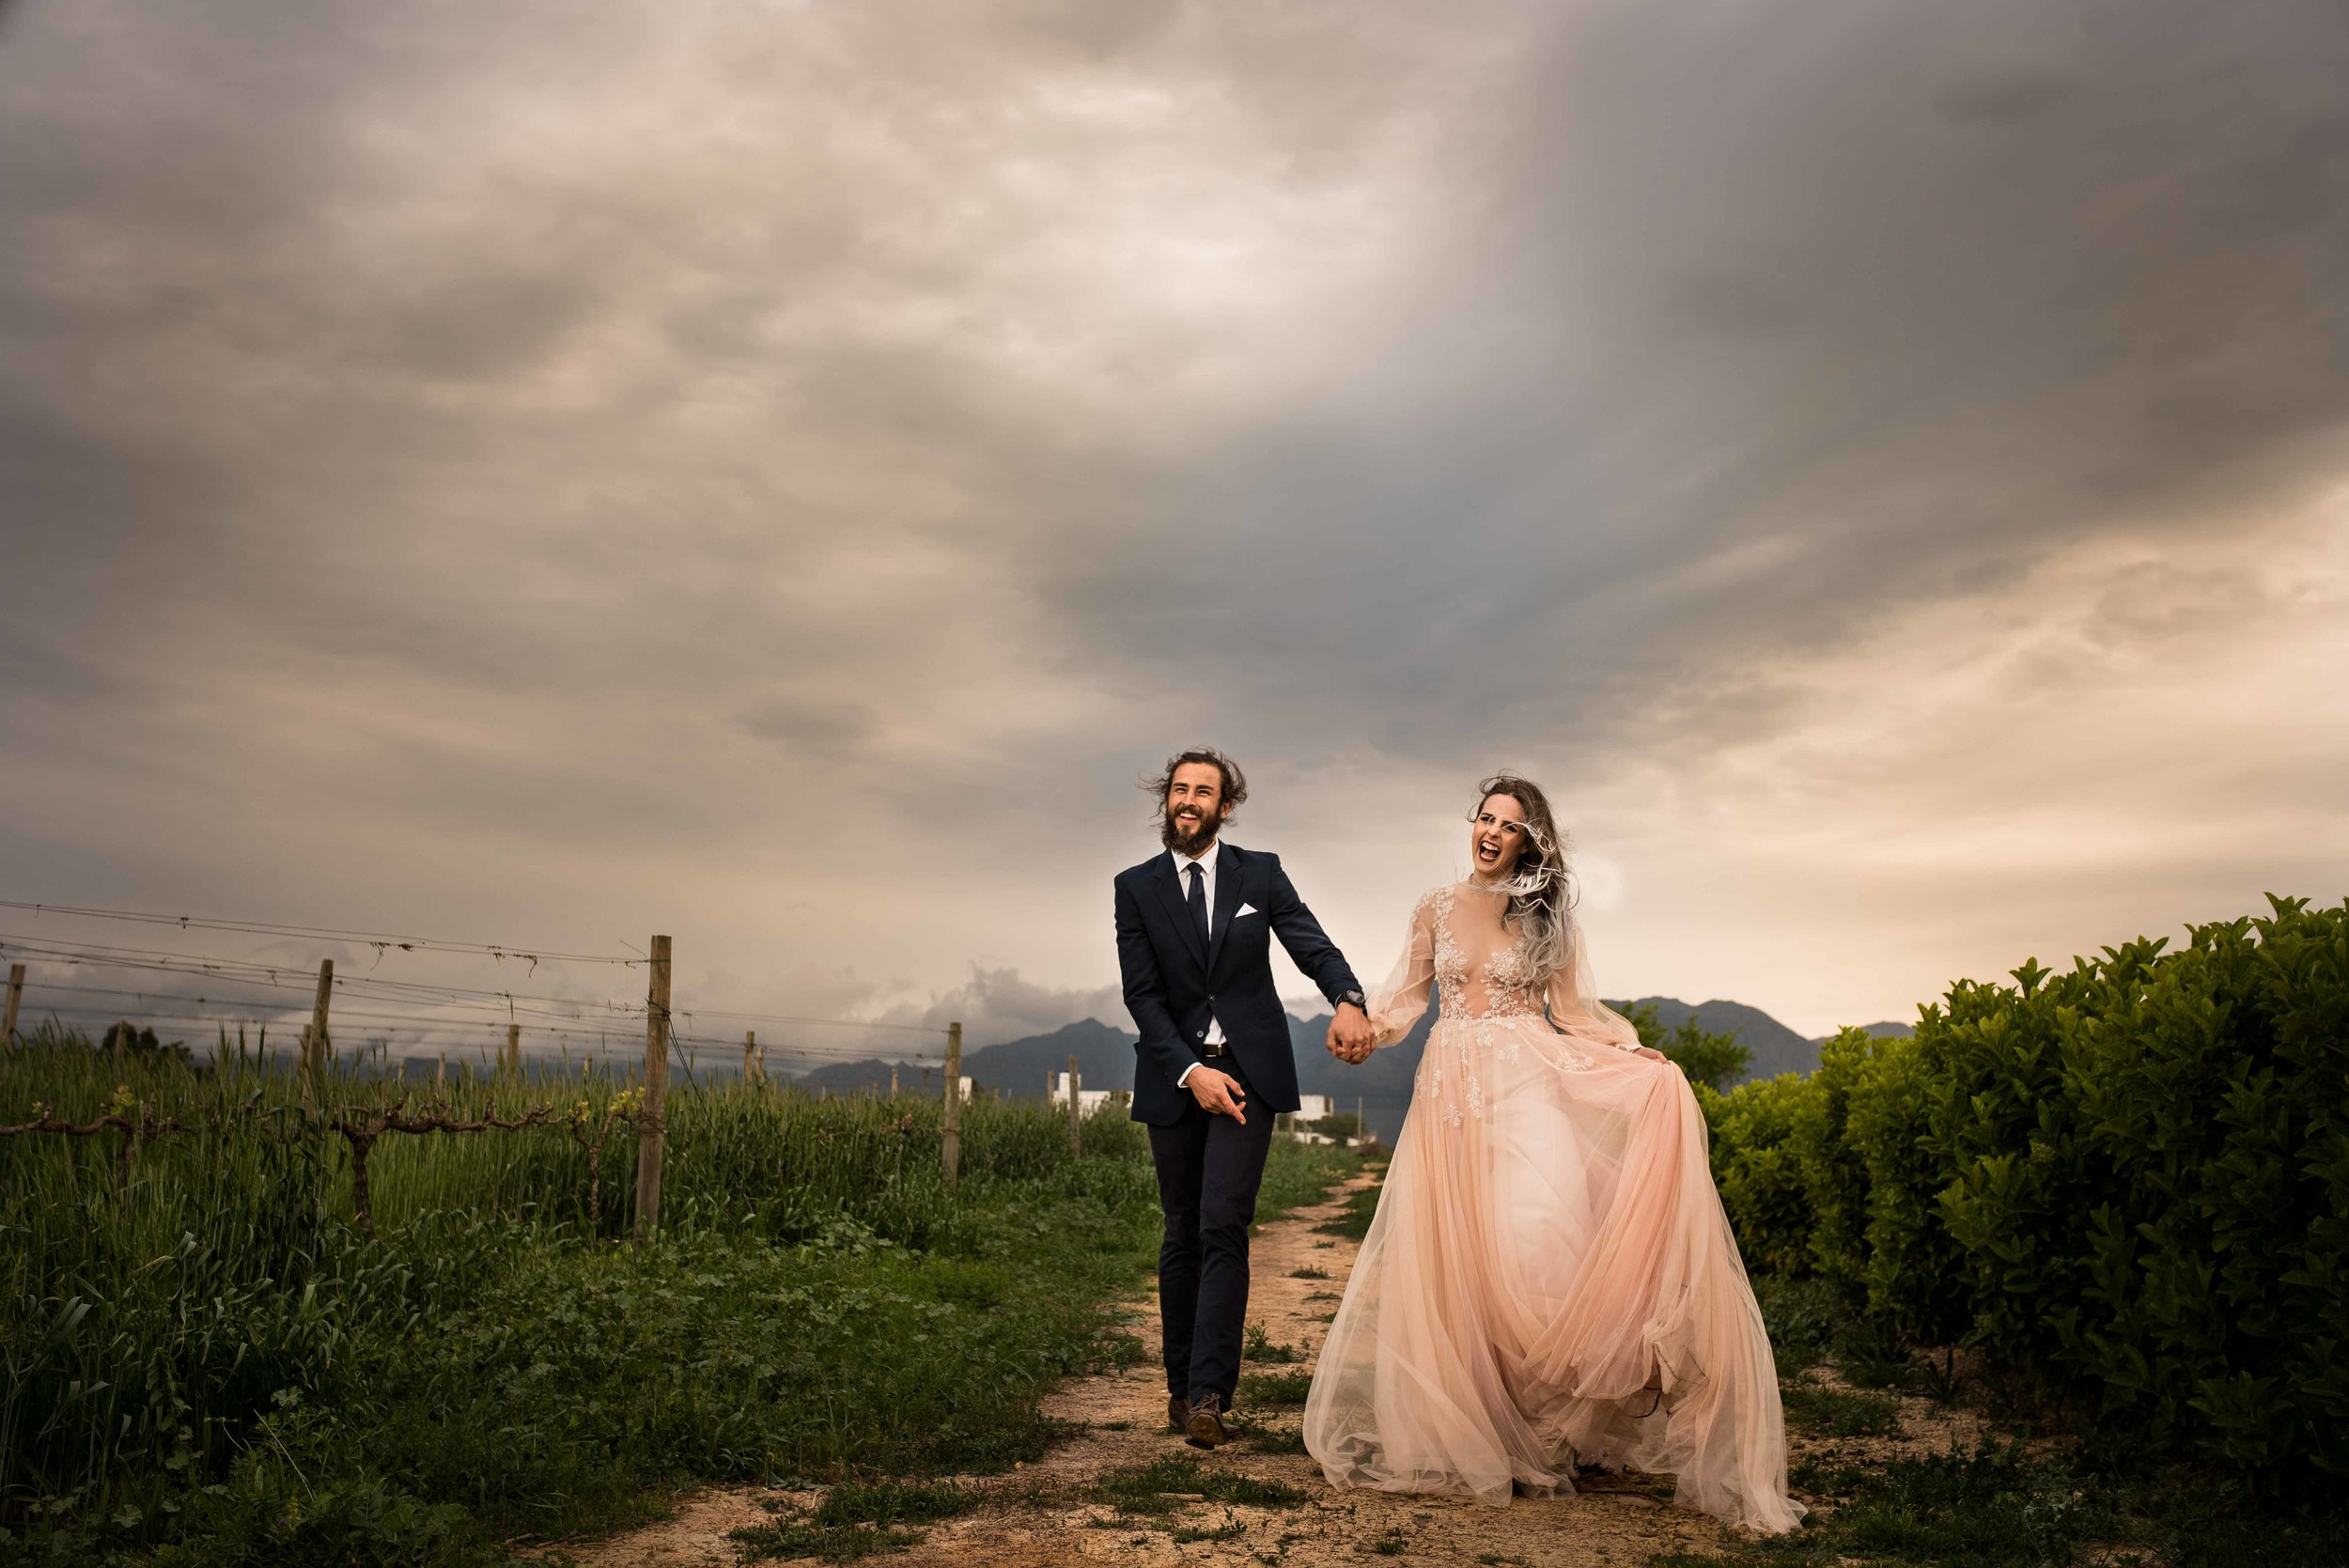 #weddingphotography #destinationweddings #winelandwedding #summerheartphotography #coupleportraits #weddingmoments